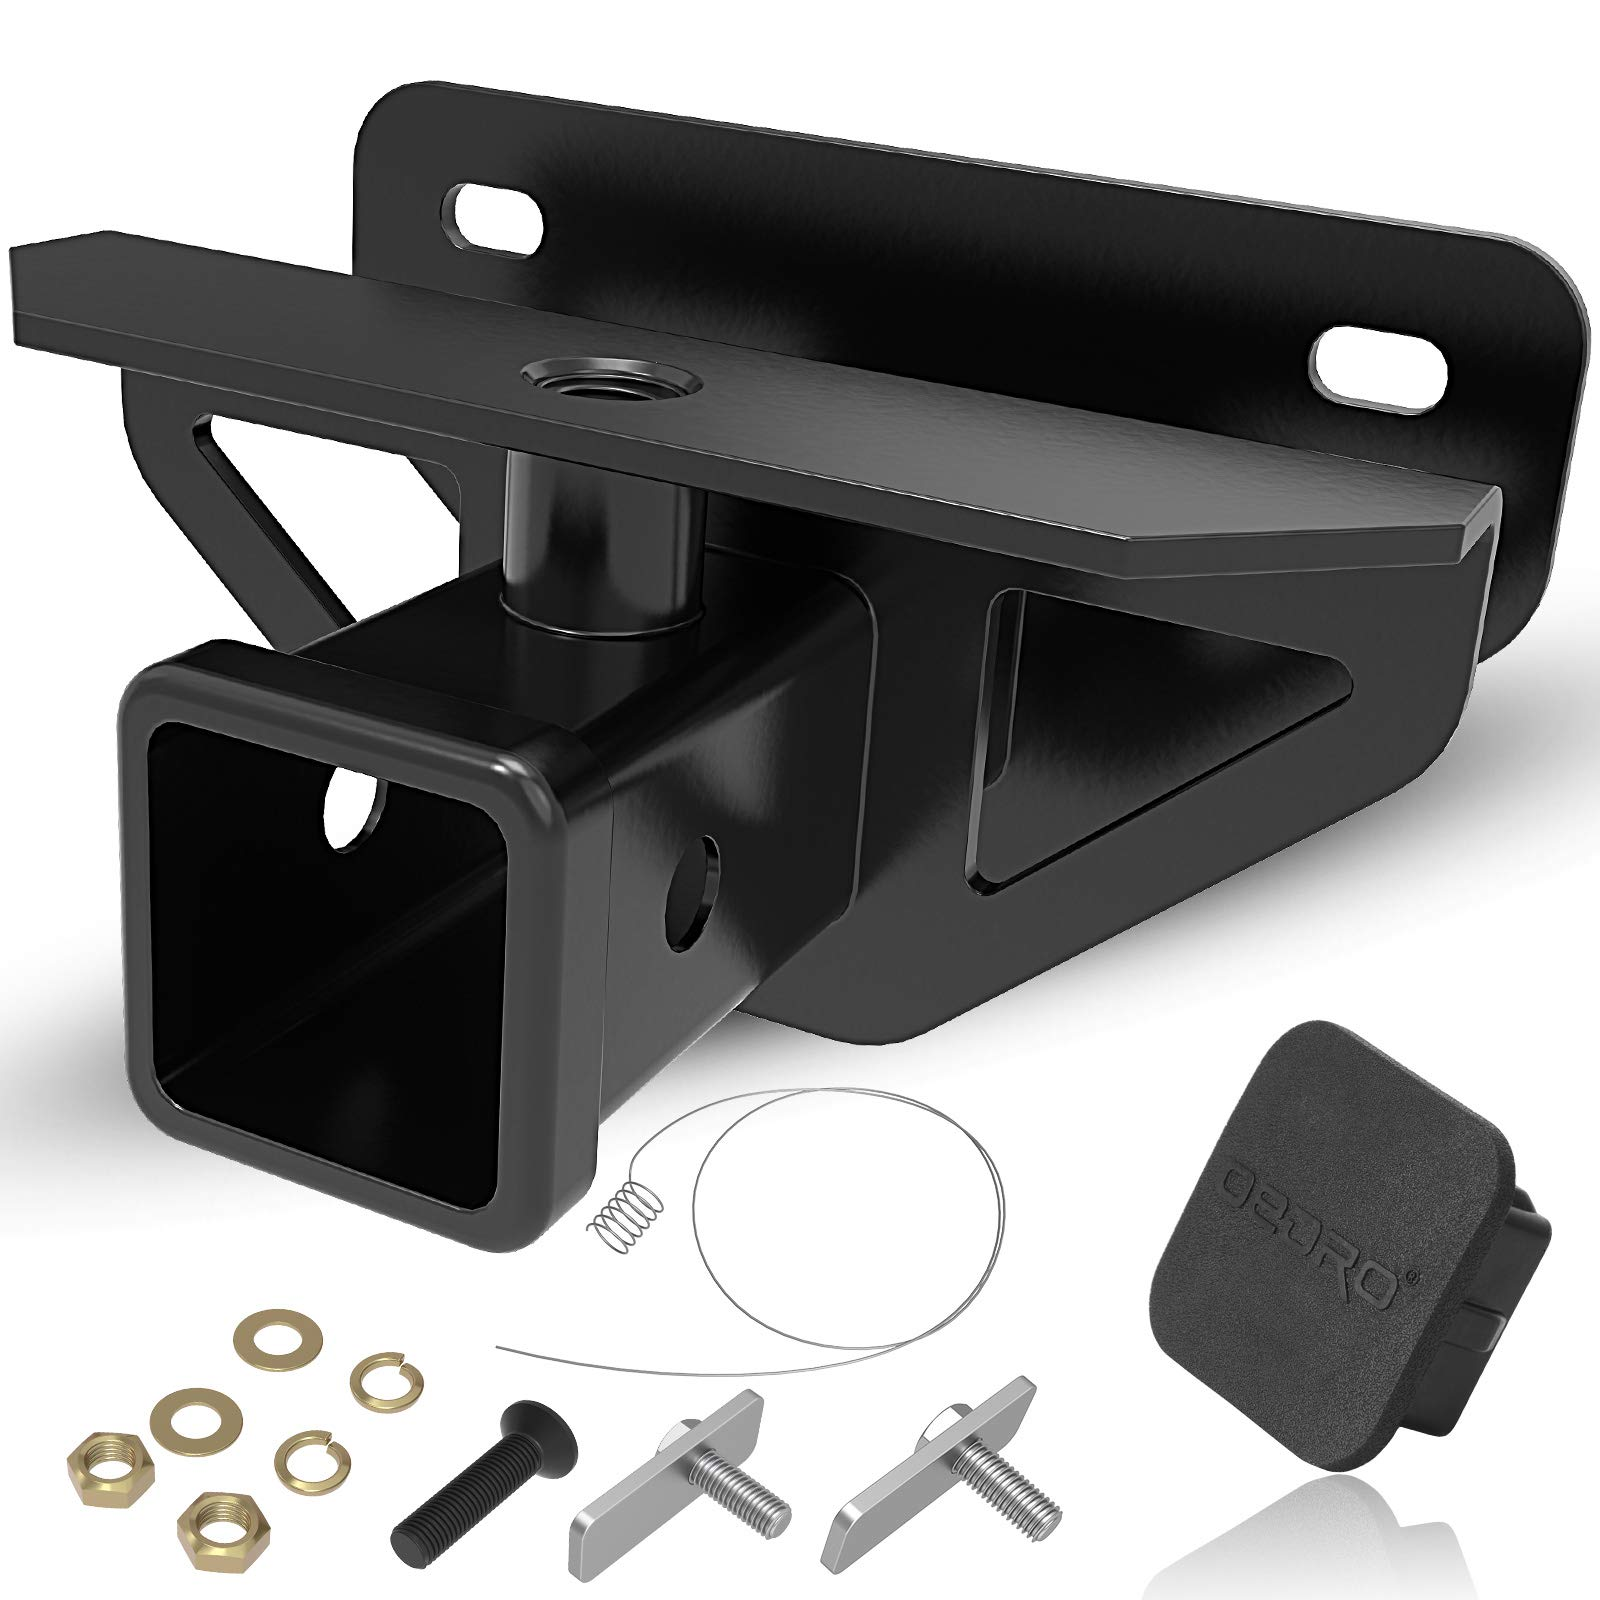 OEDRO 2'' Rear Trailer Hitch Receiver Class 3 Tow Towing Hitch & Cover Kit, Compatible for 2003-2018 Dodge Ram 1500 & 2003-2013 Ram 2500 3500, Tow Combo (Hitch Cover included) by oEdRo